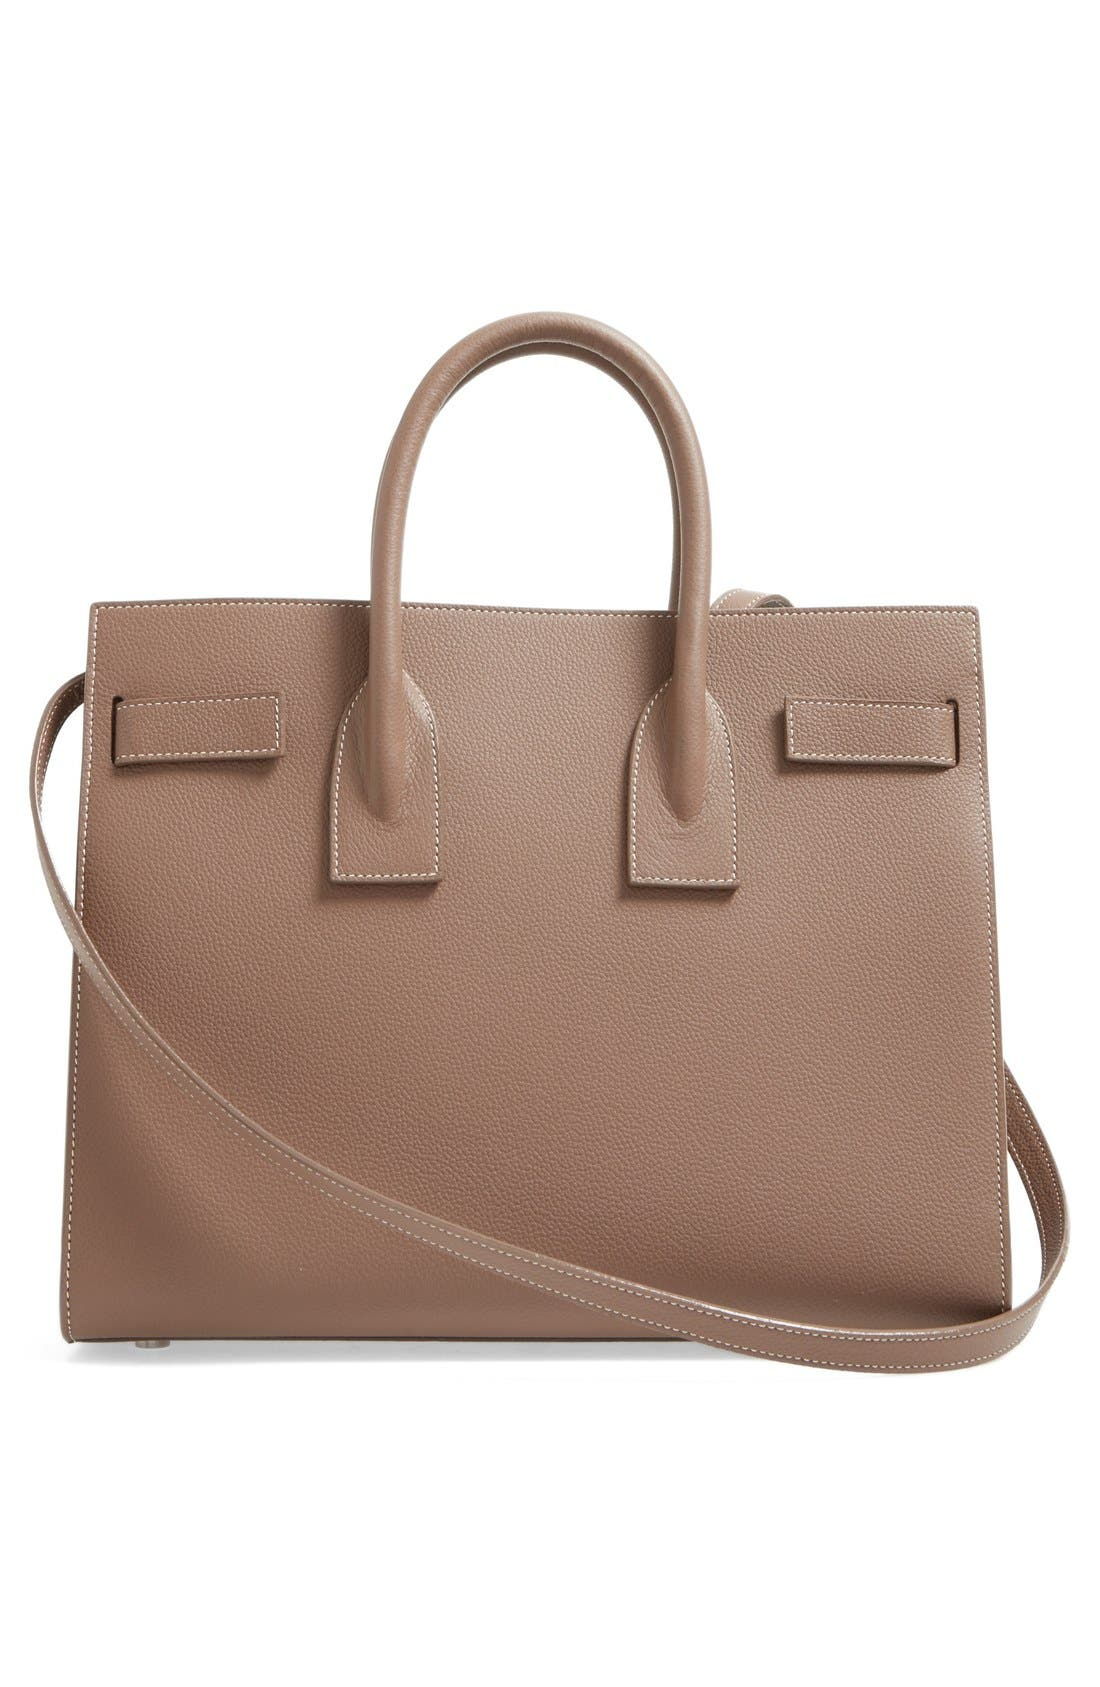 Small Sac de Jour Calfskin Leather Tote,                             Alternate thumbnail 3, color,                             Taupe/White